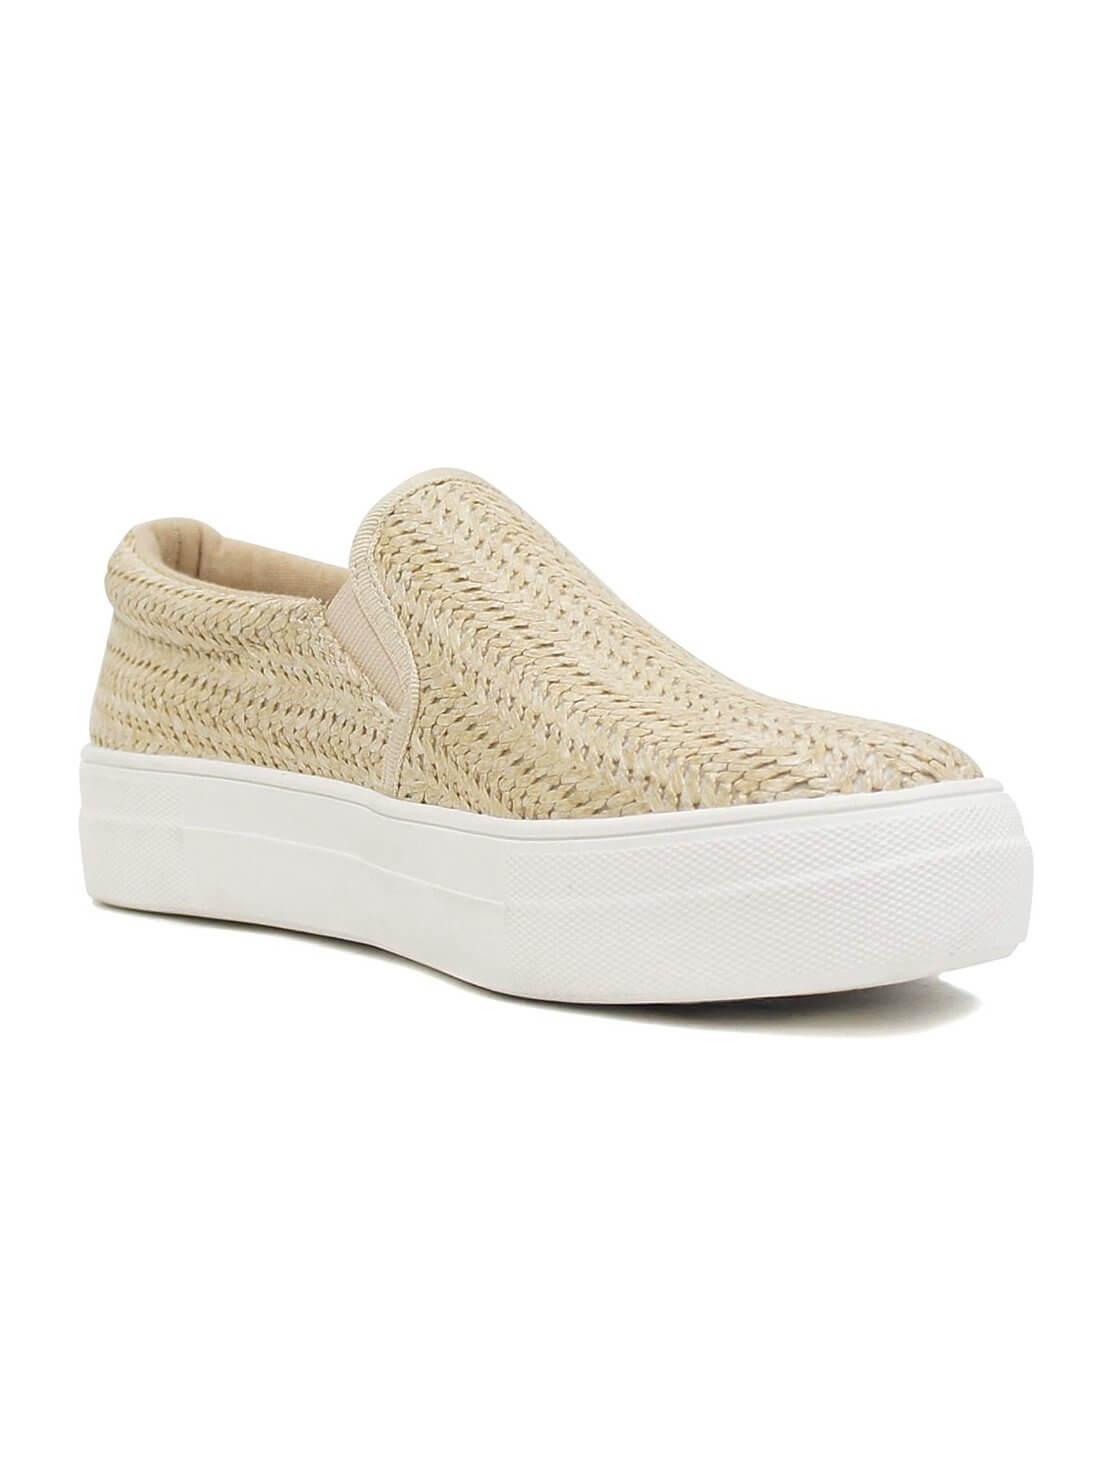 beige slip-on sneakers with white rubber sole